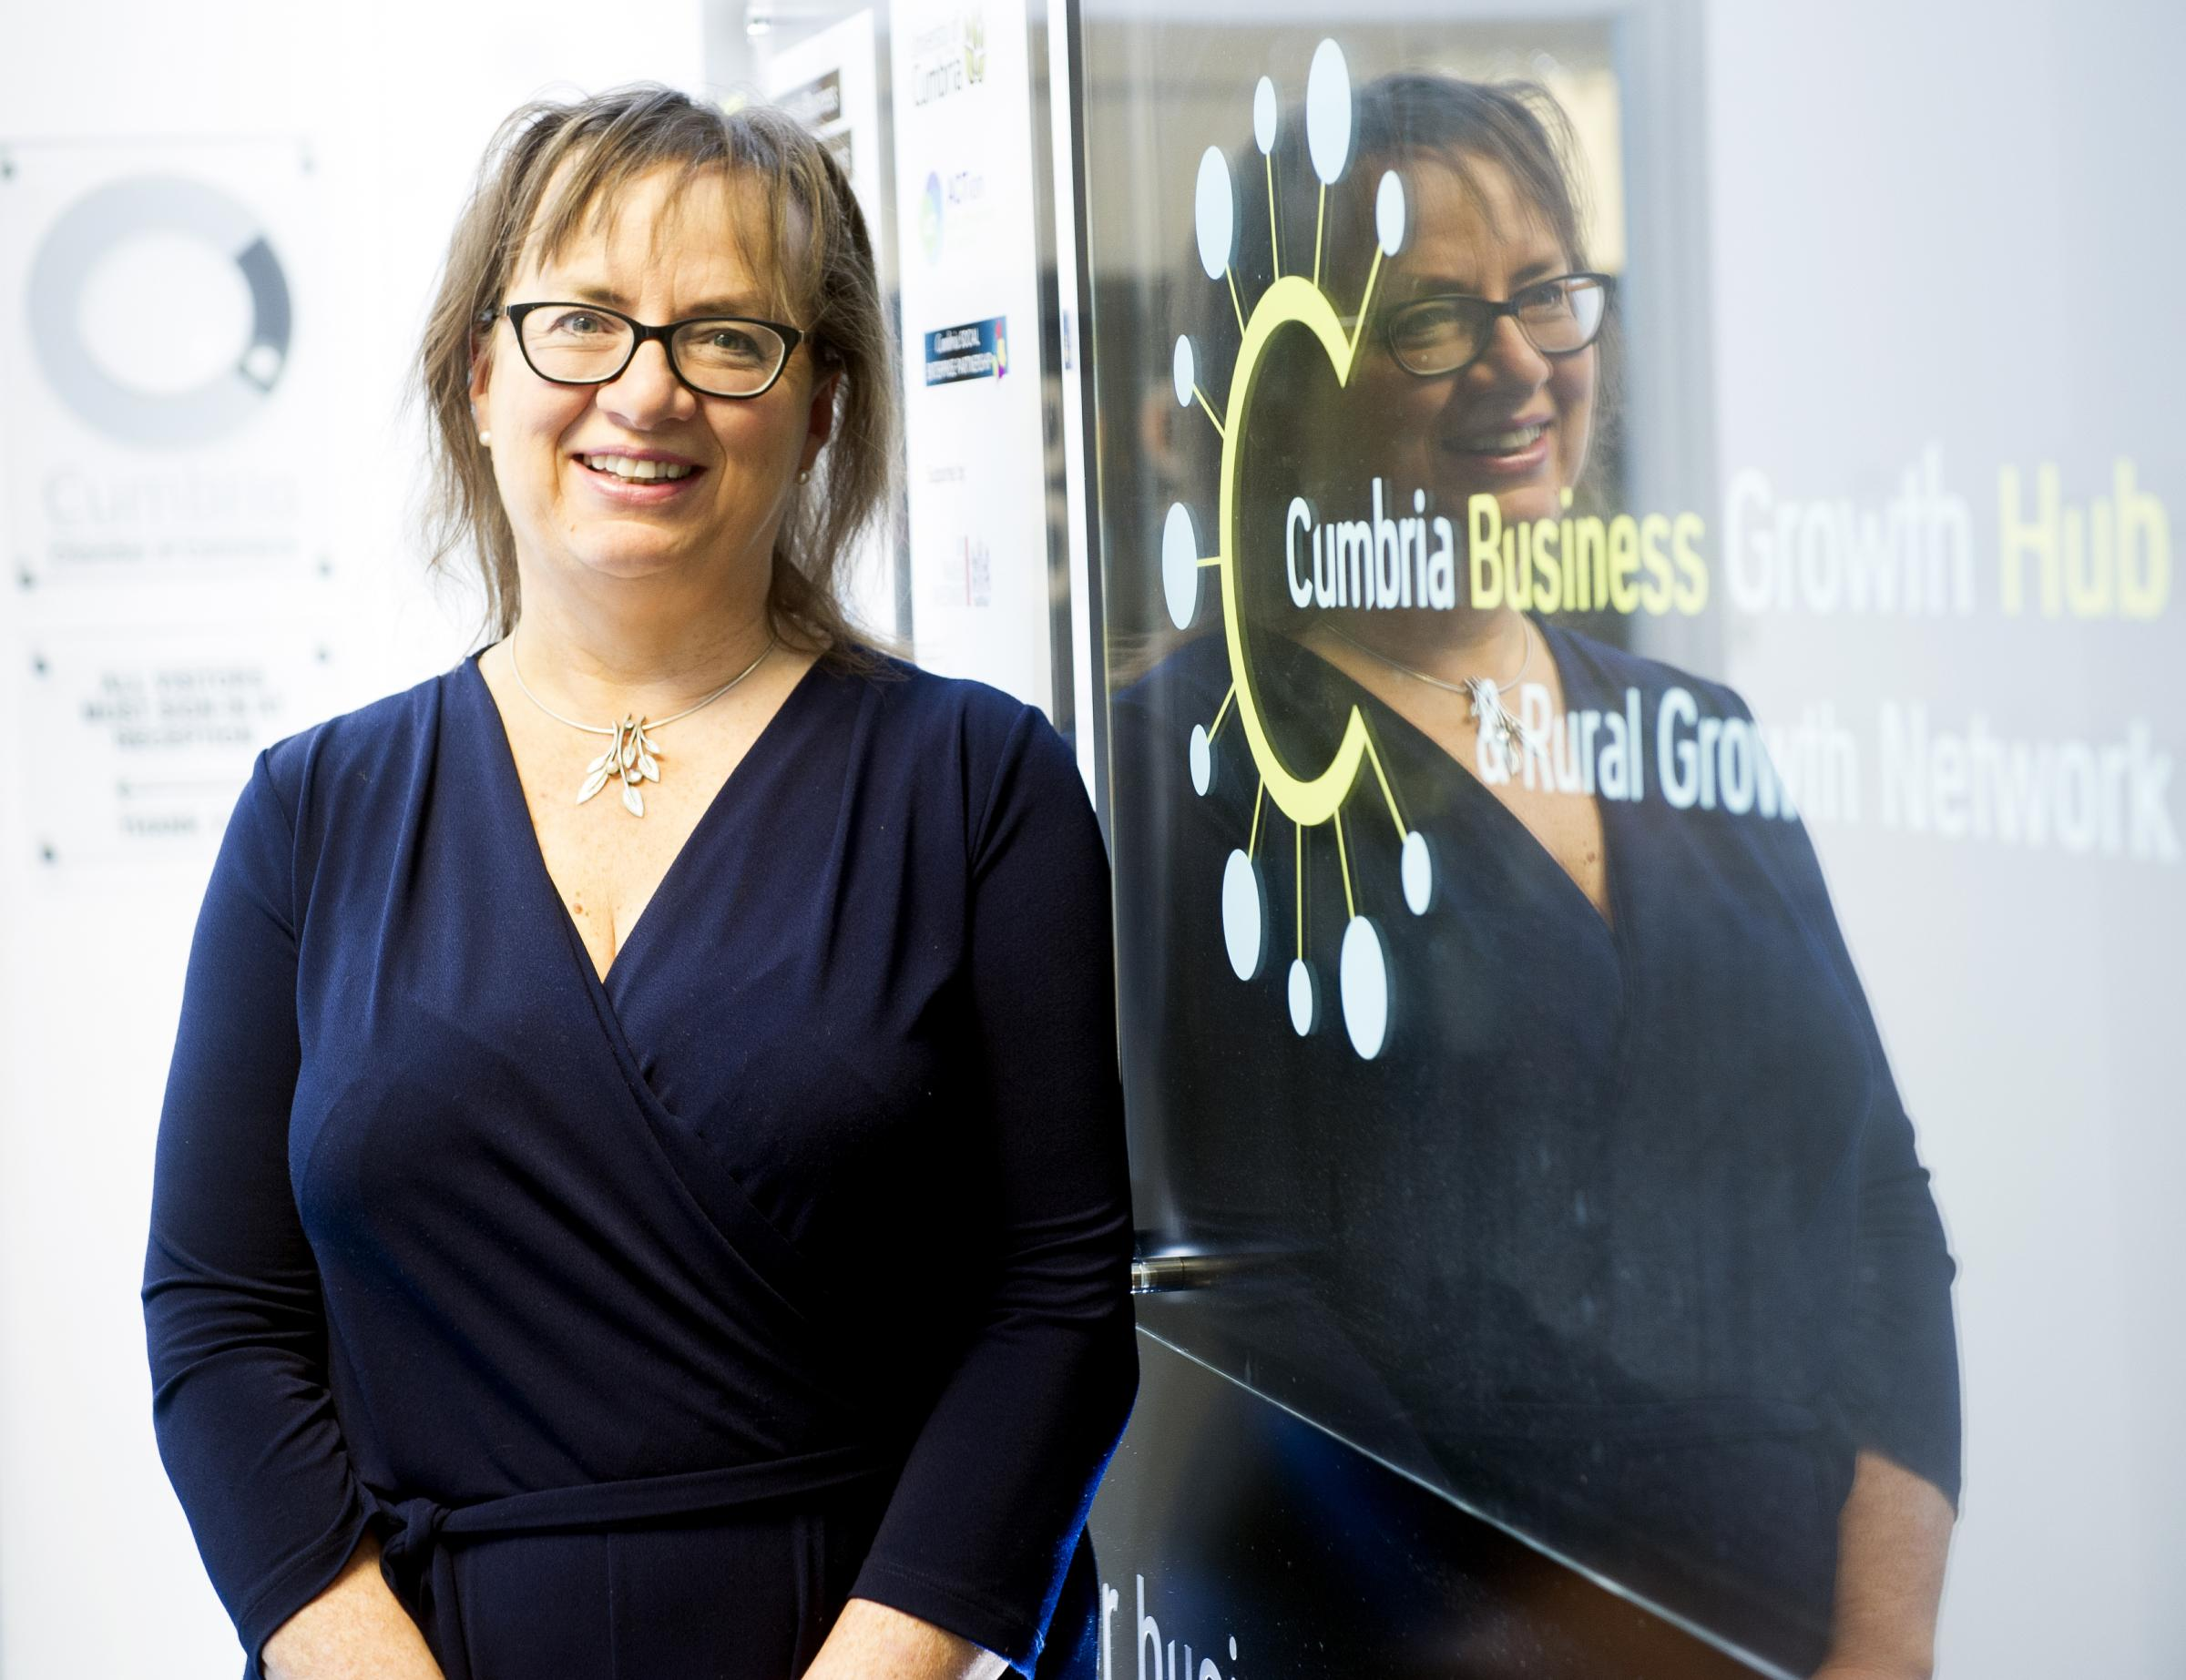 Suzanne Caldwell, deputy chief executive, Chamber of Commerce